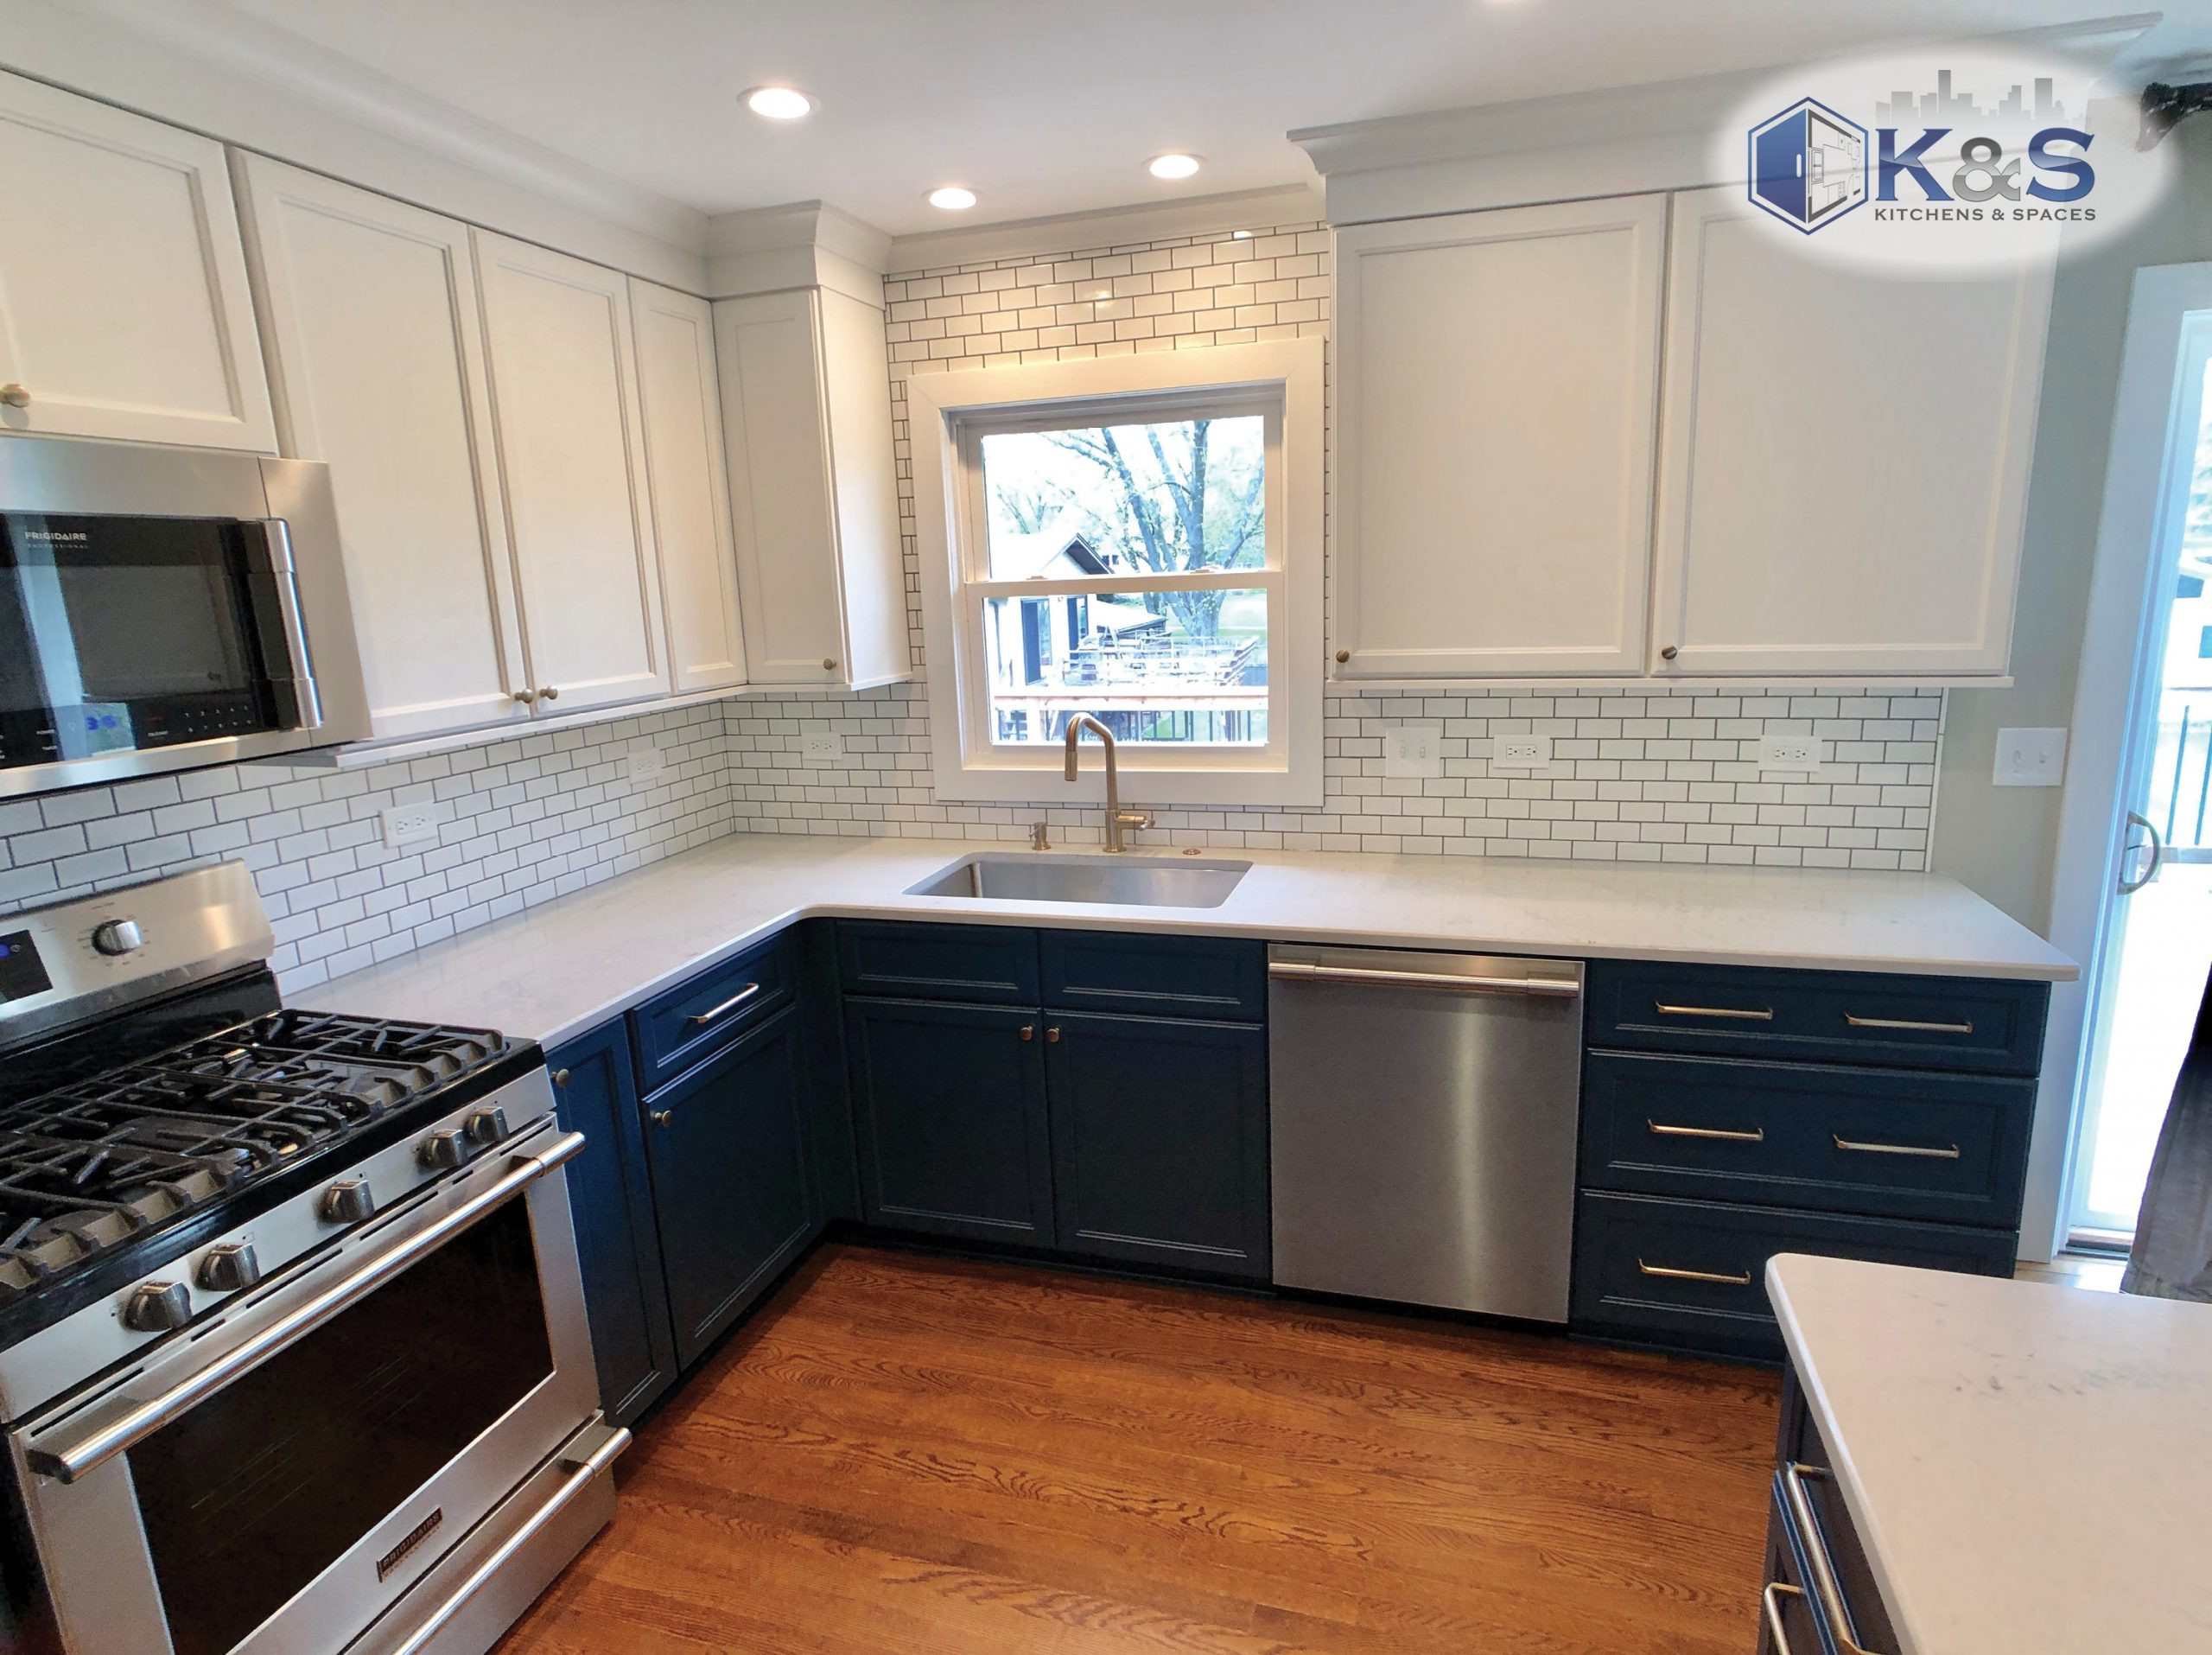 Finished kitchen remodel in Downers Grove